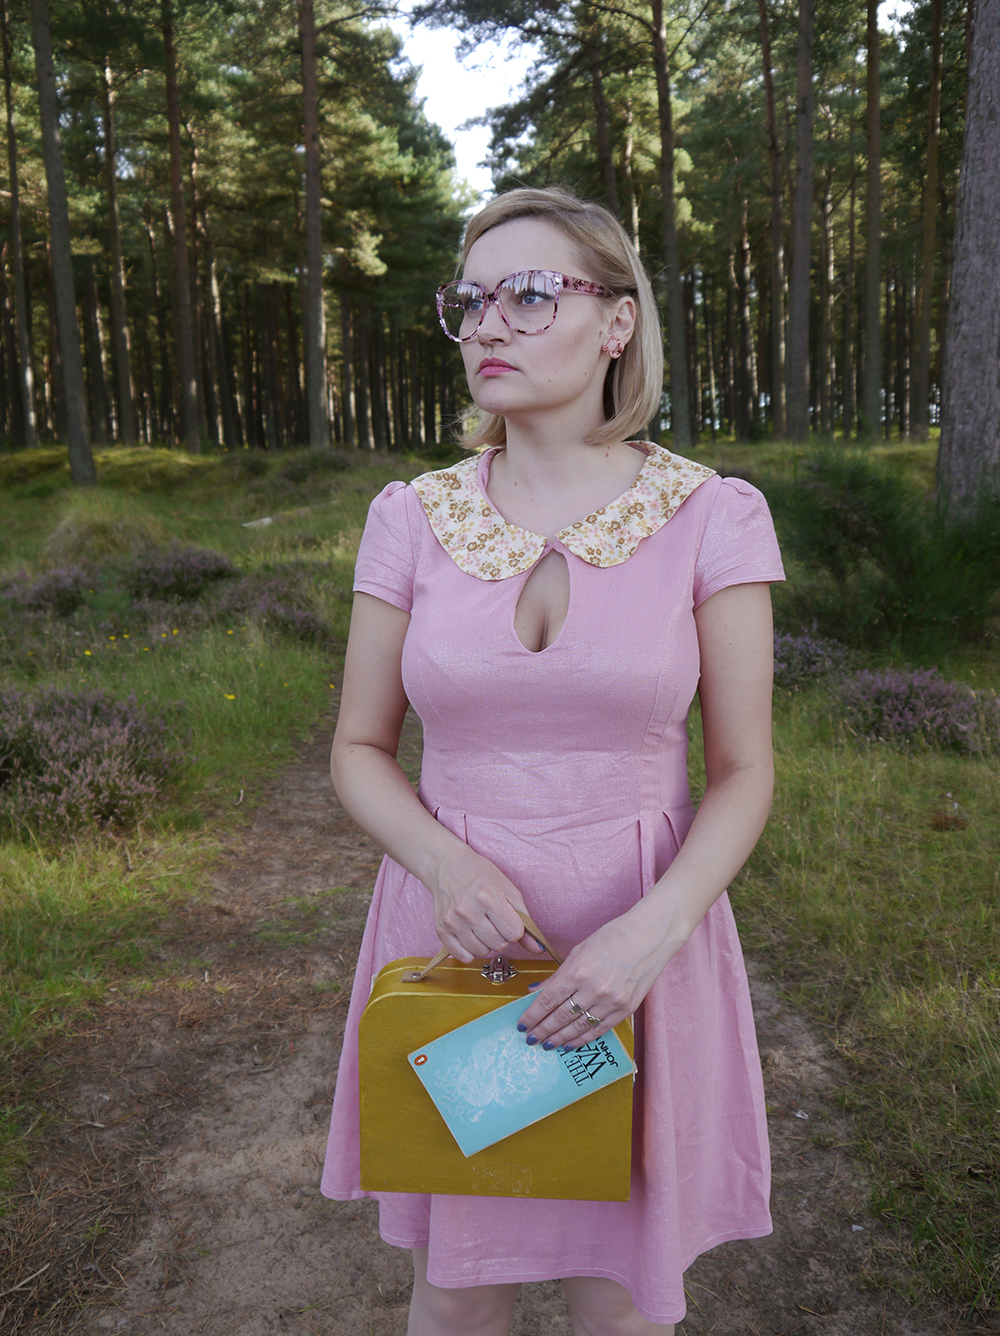 Moonrise Kingdom costume, fun fashion bloggers, colourful fashion, quirky fashion, wearable Halloween outfit, easy Halloween, Suzy Bishop, Suzy Bishop dress, Suzy Bishop costume, Suzy Bishop outfitWes Anderson style inspiration, Tentsmuir National Nature Reserve, Tayport photoshoot,